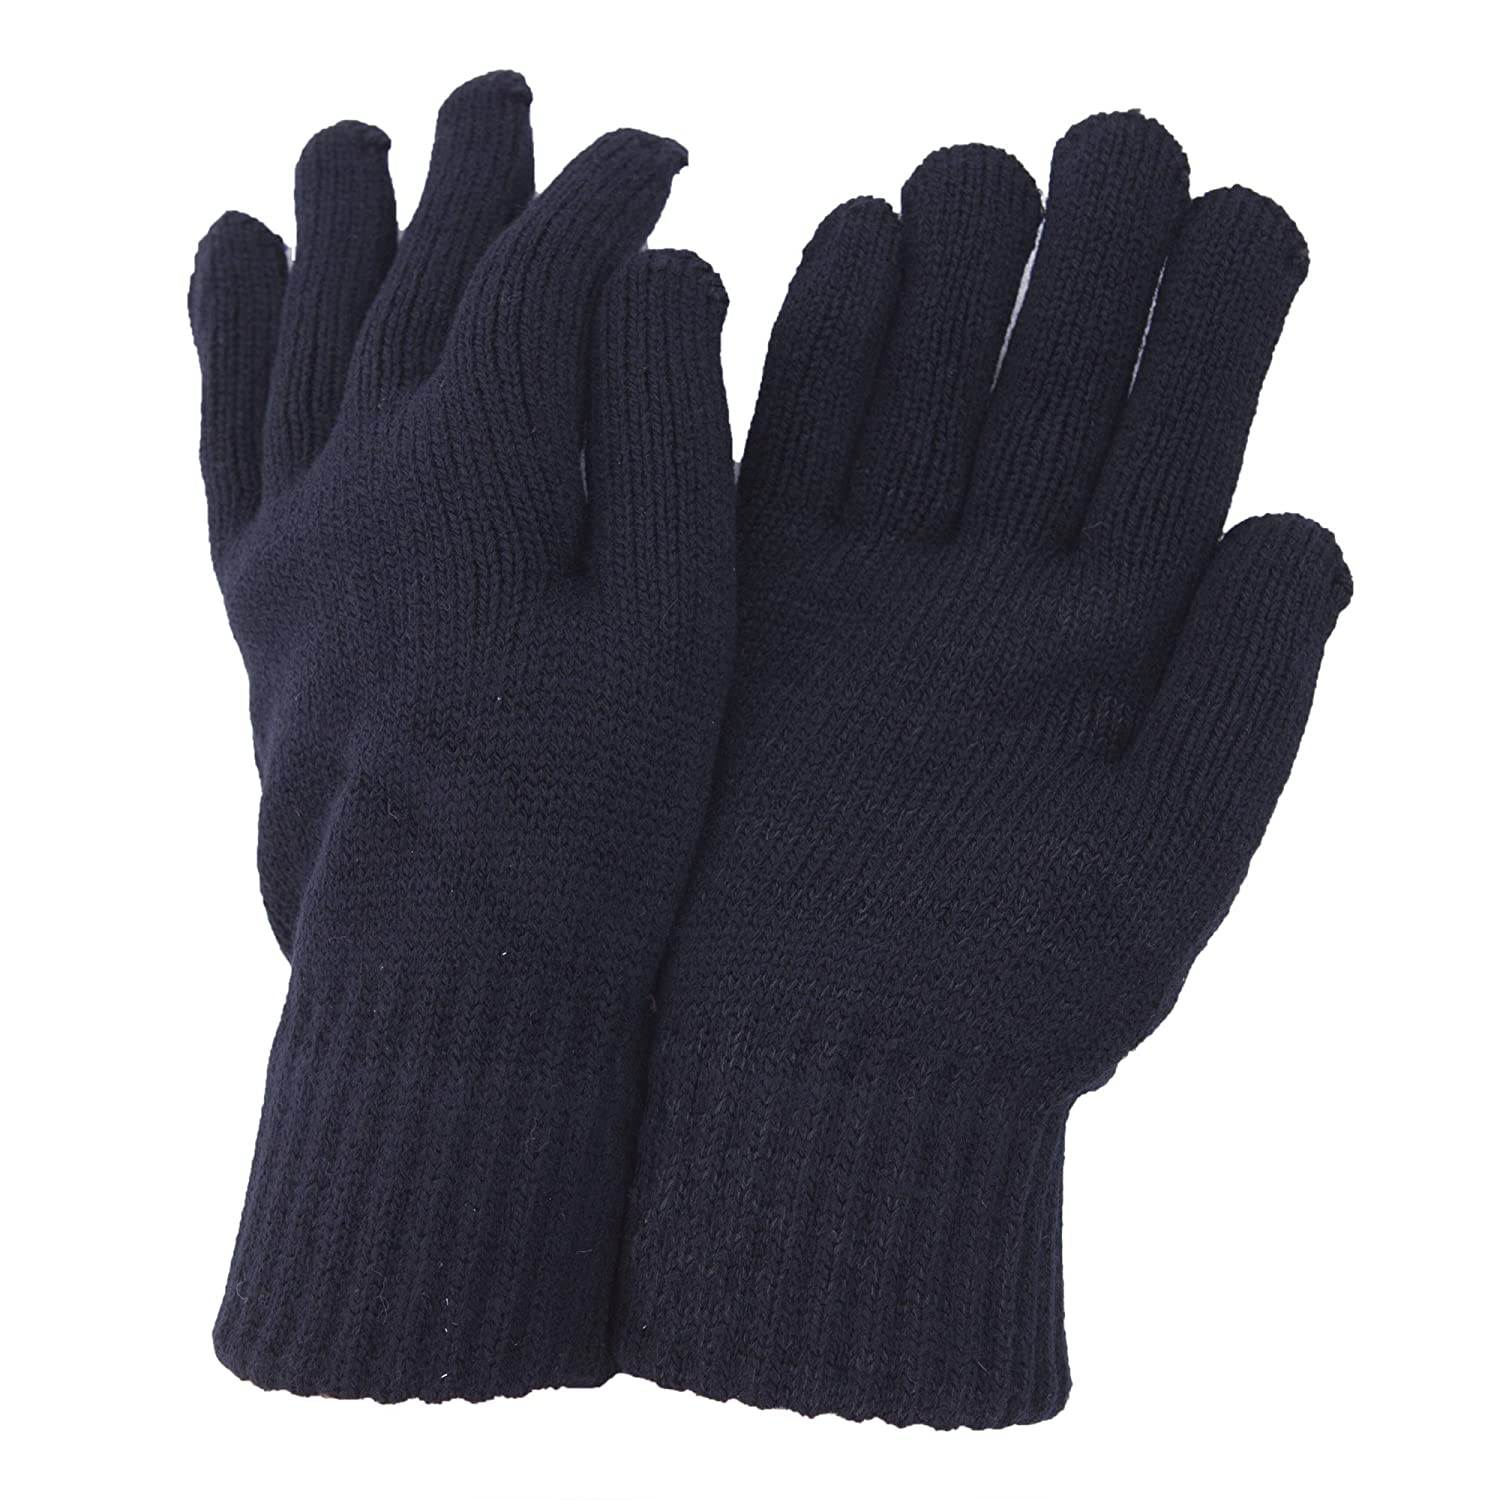 CLEARANCE - Mens Thermal Knitted Winter Gloves Universal Textiles UTGL348_2